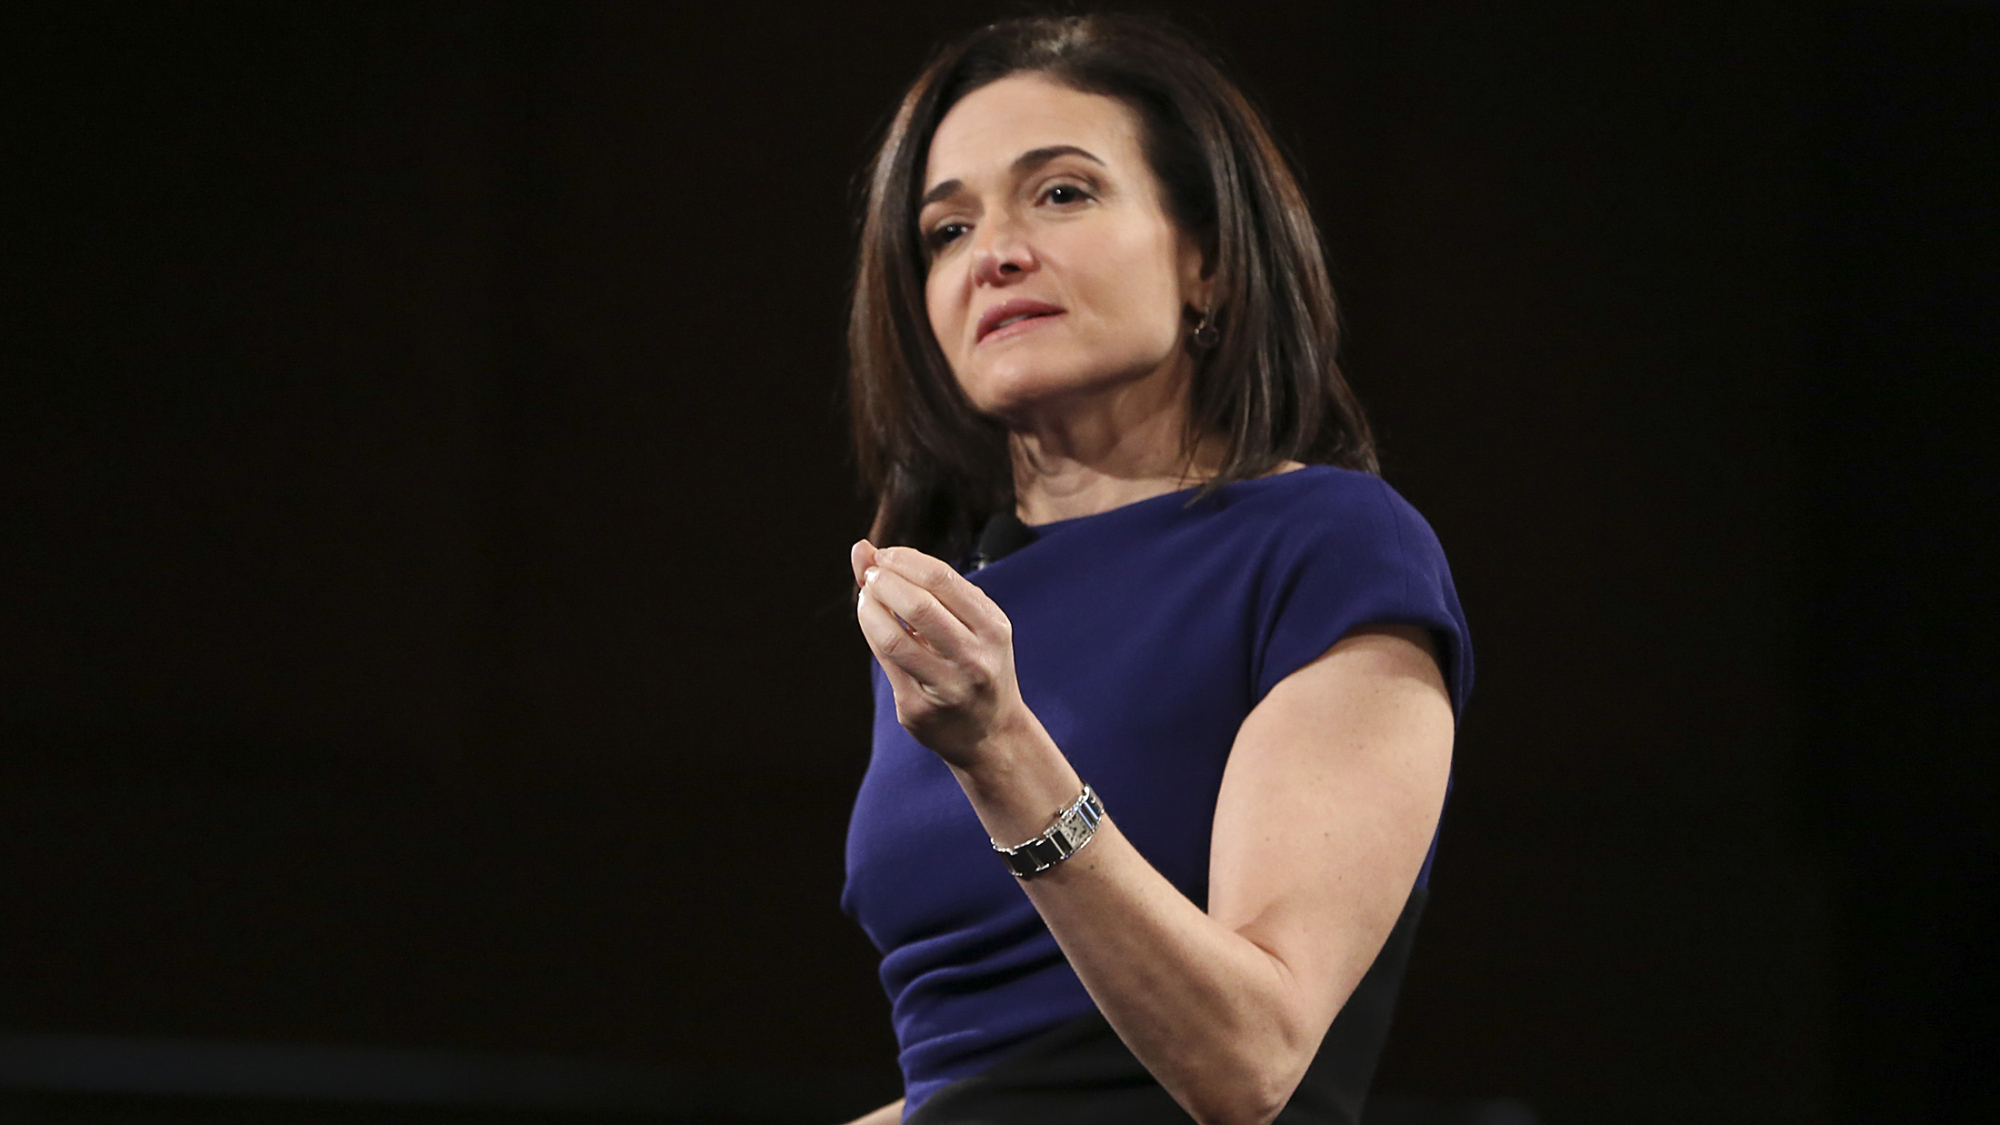 Sandberg Speech on Resilience May Form Basis for Second Book - Bloomberg